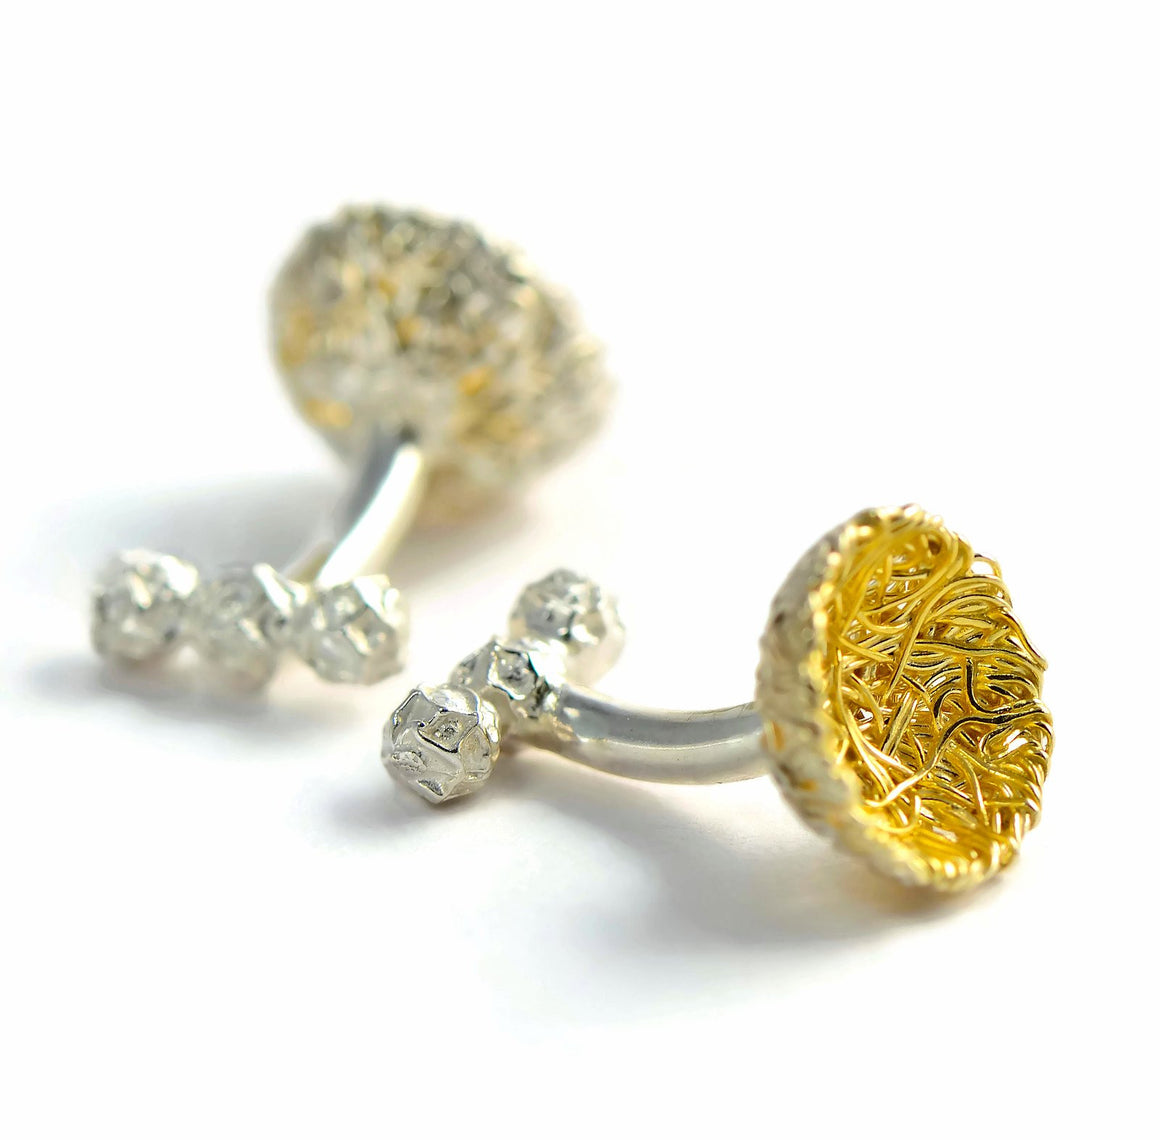 Bird's nest cufflinks, silver woven thread